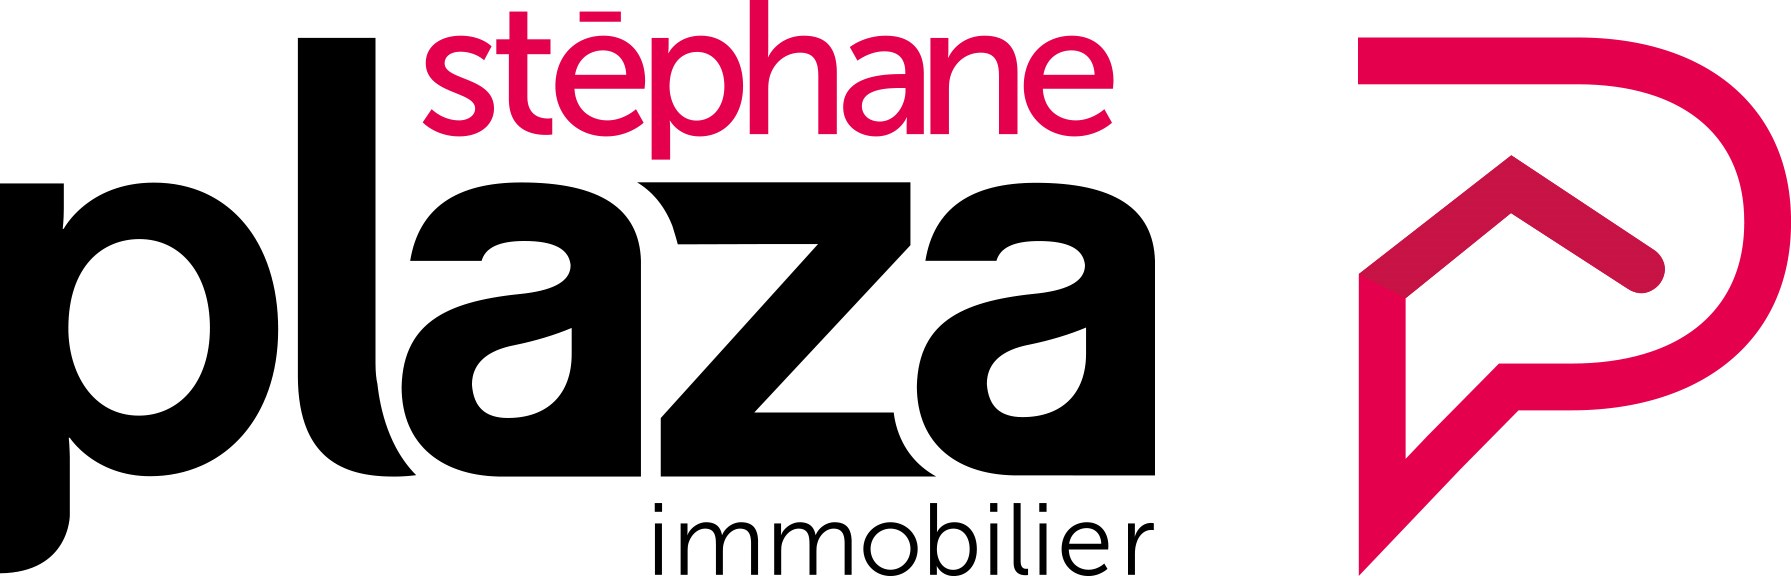 Stephane plaza immobilier sucy agence immobili re sucy for Achat maison sucy en brie